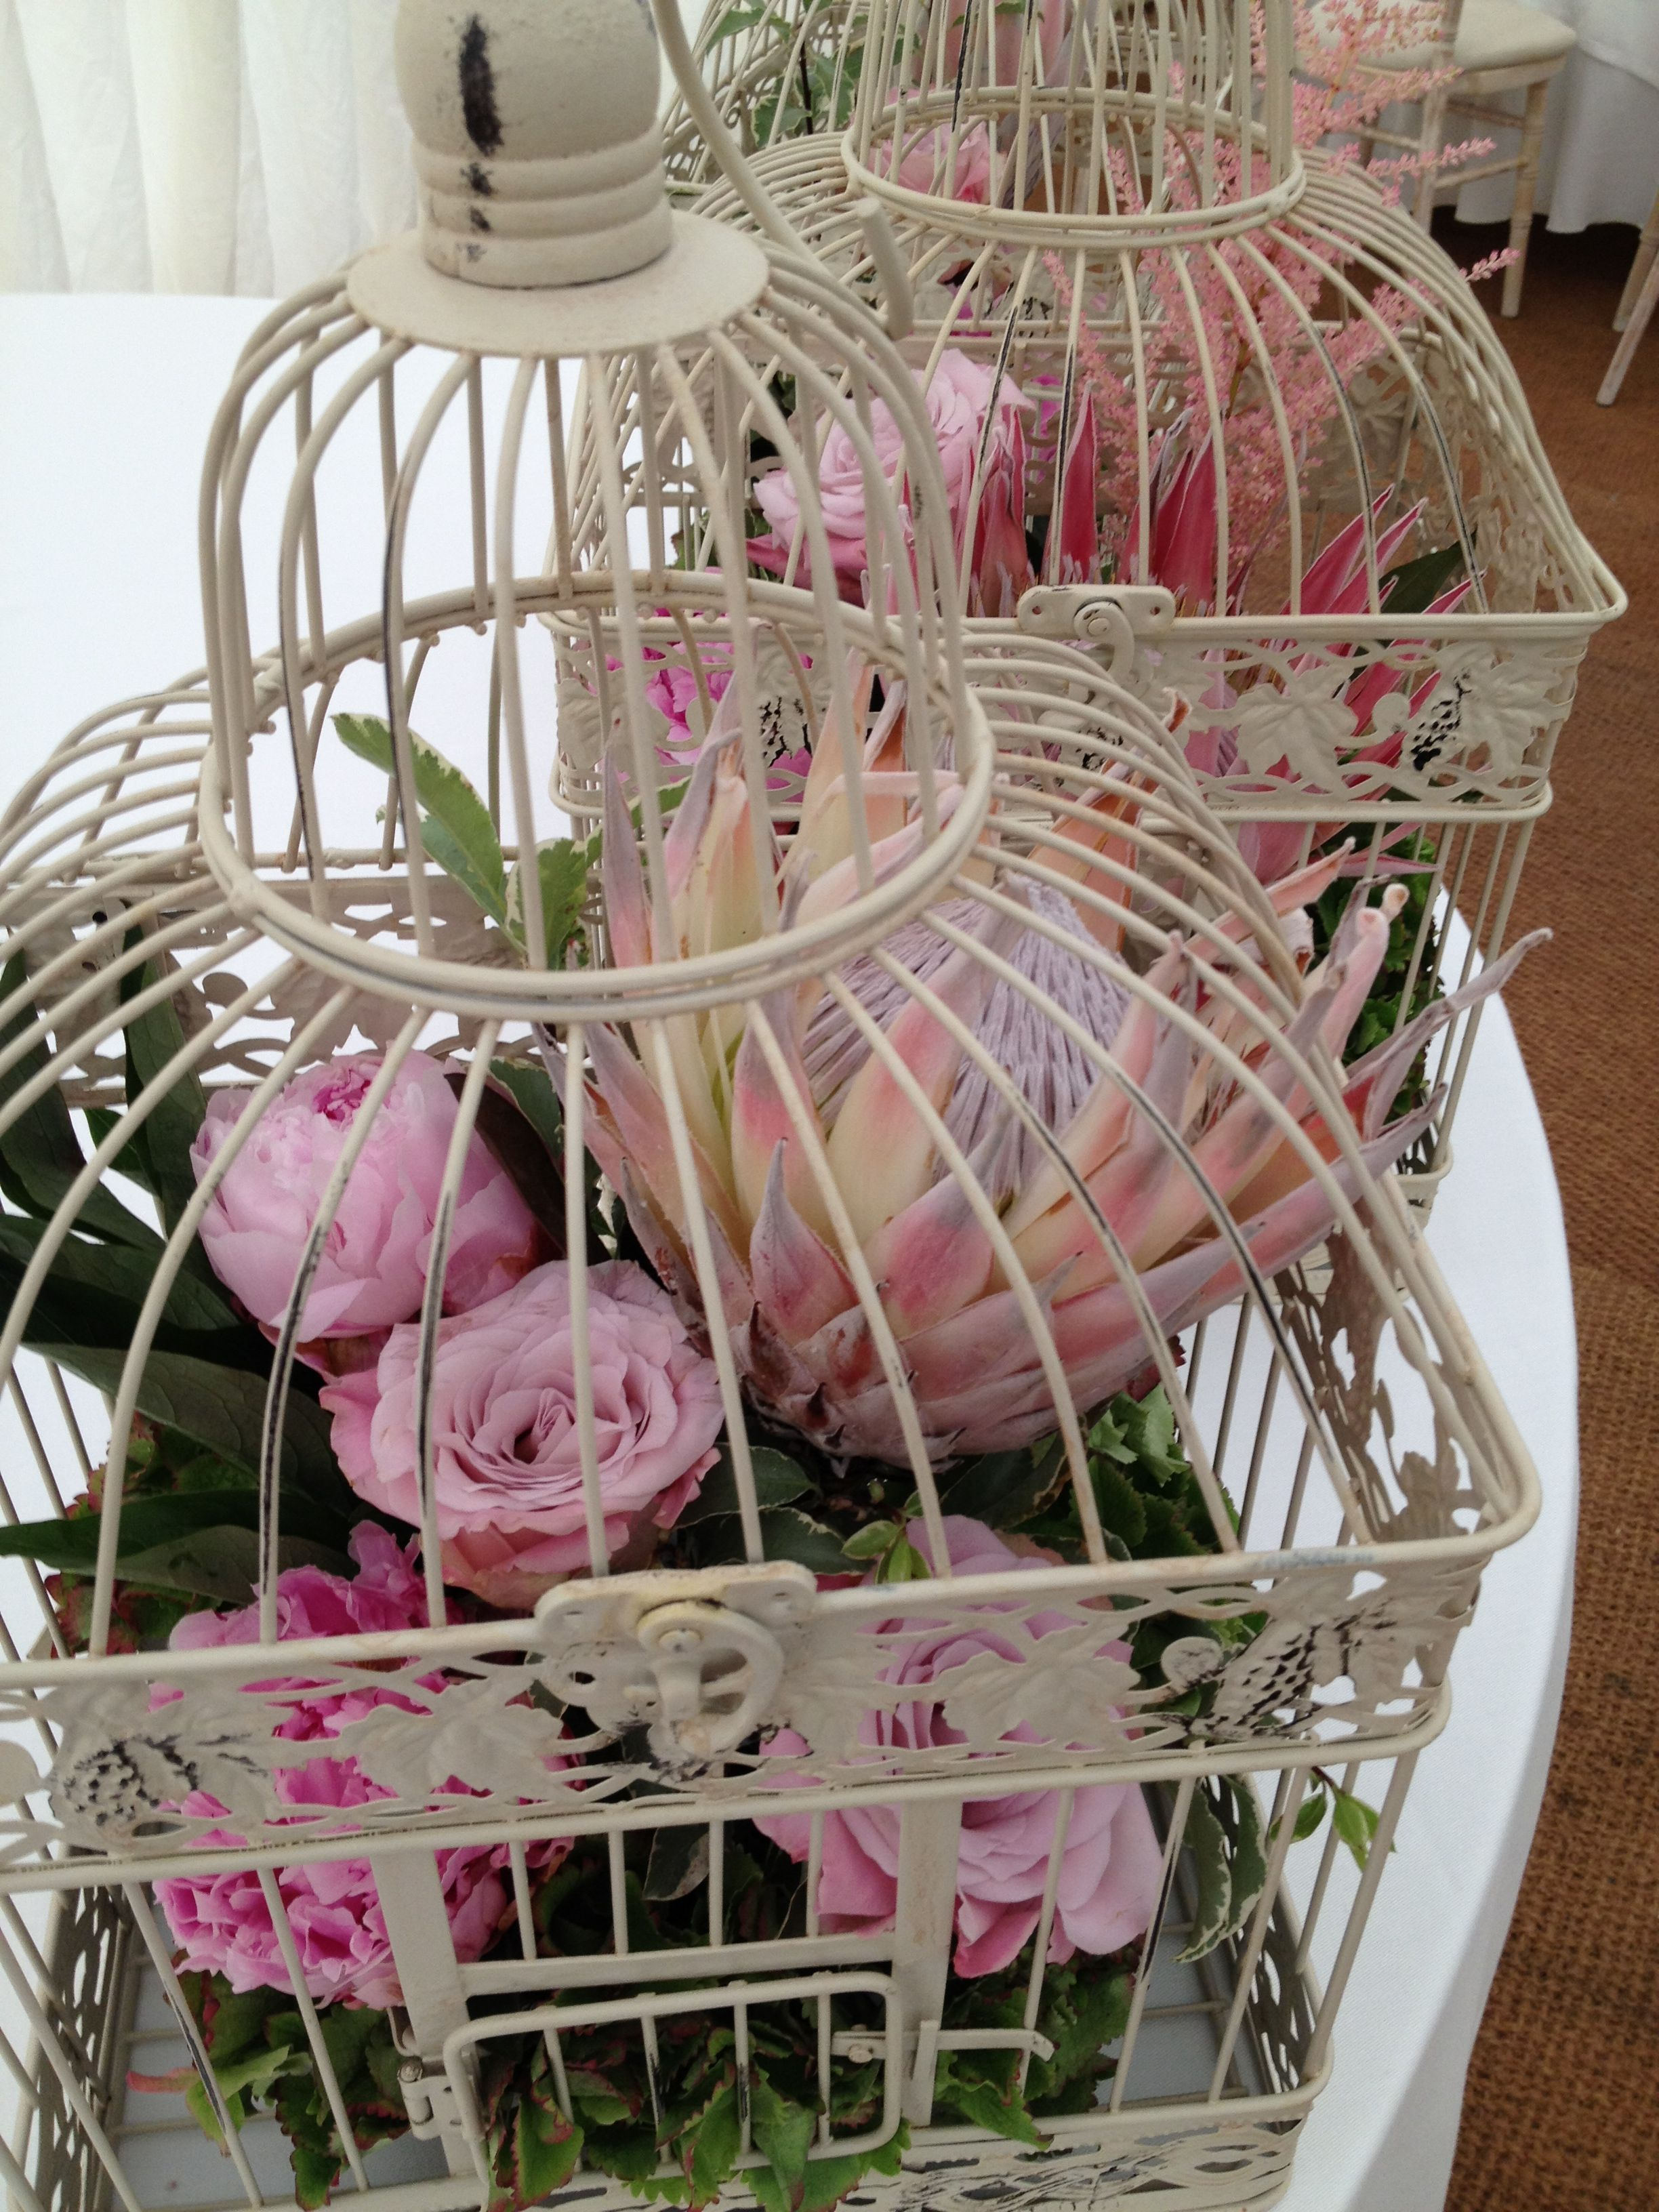 Cute Pink Roses Enclosed In A Bird Cage Are Made